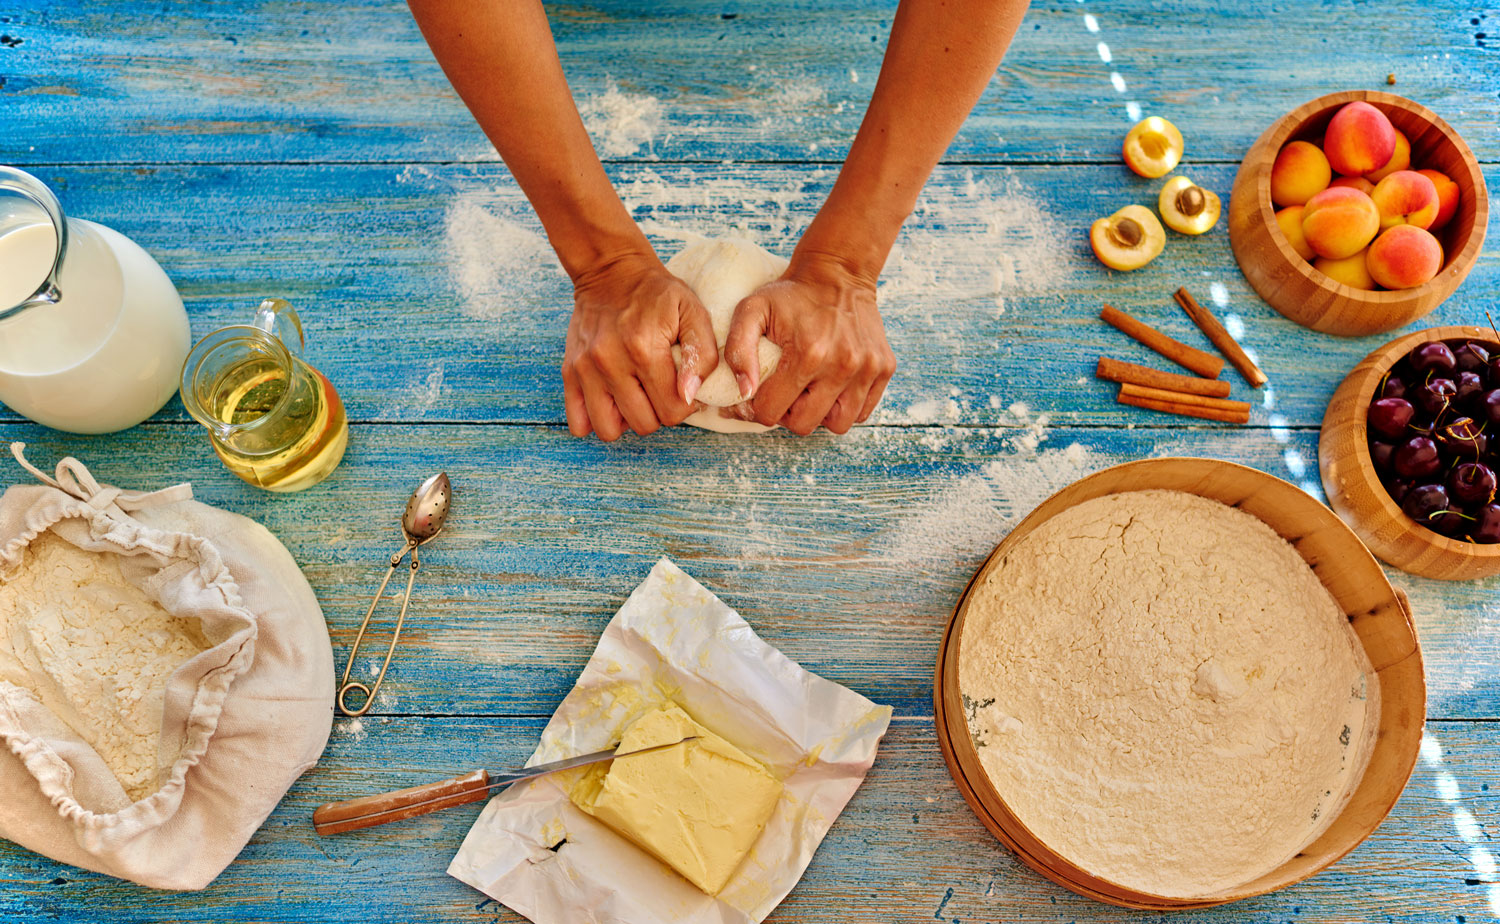 Baking takes time, so does growing up, young ladies.